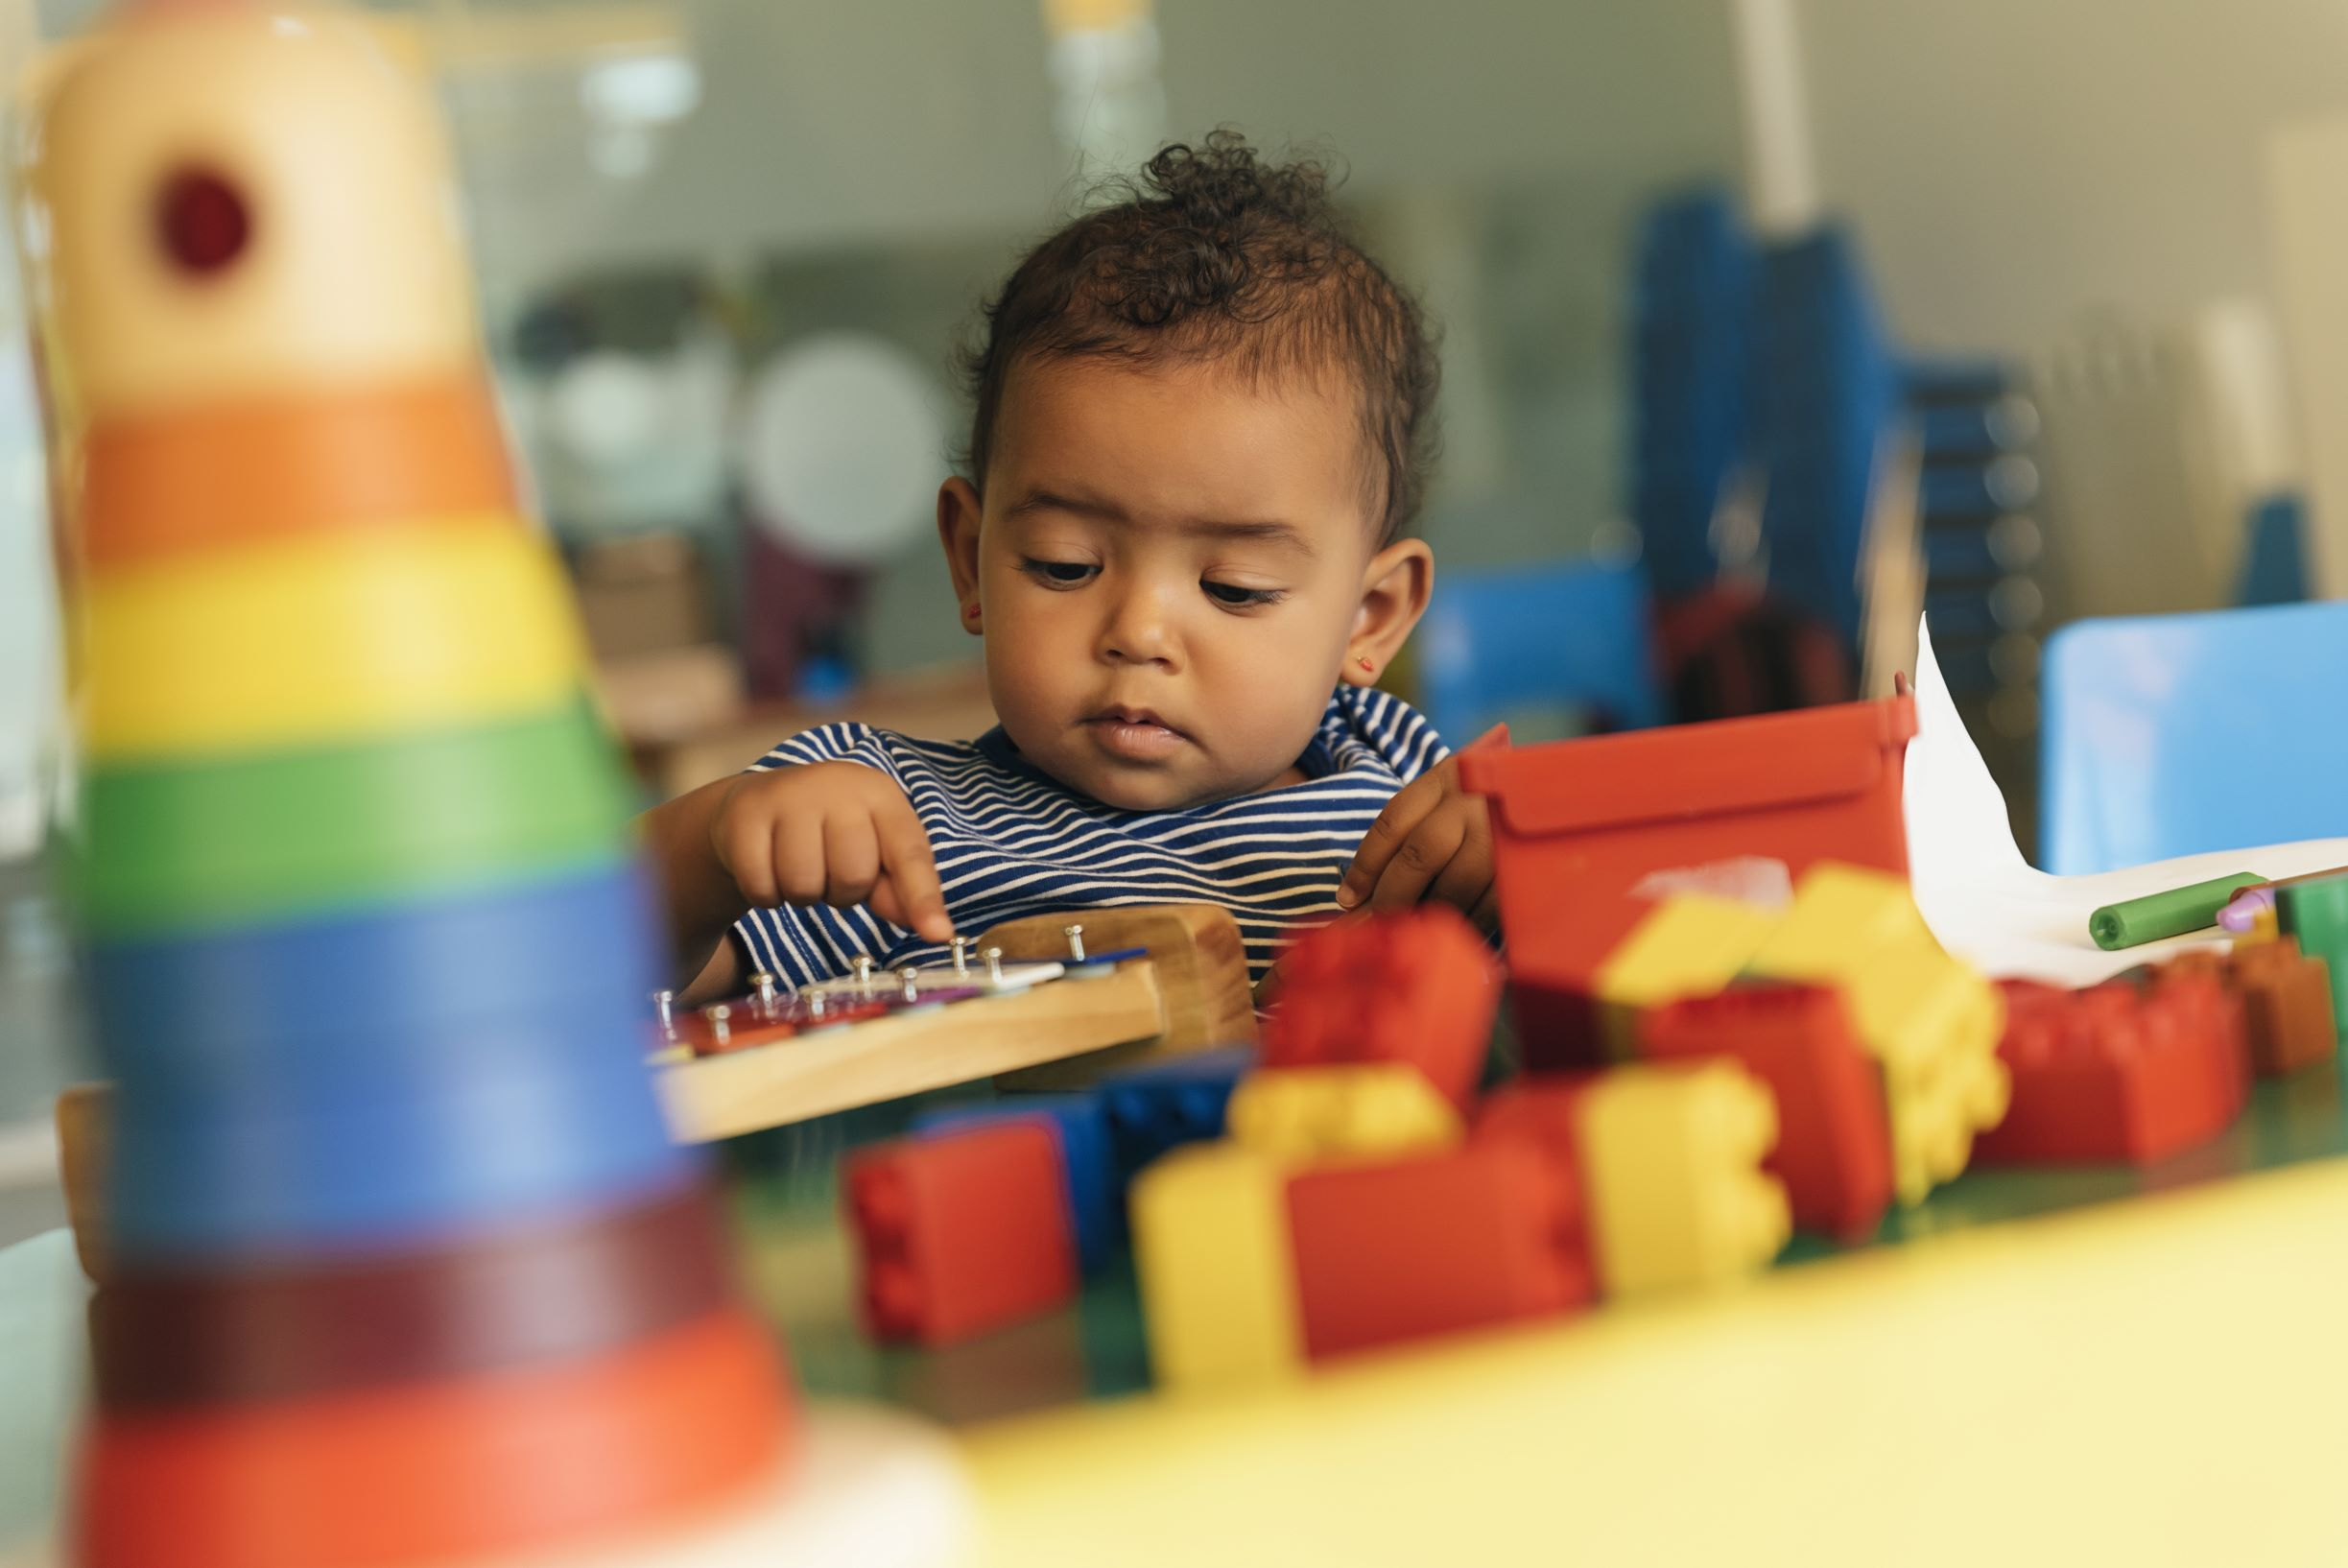 Child with colored blocks